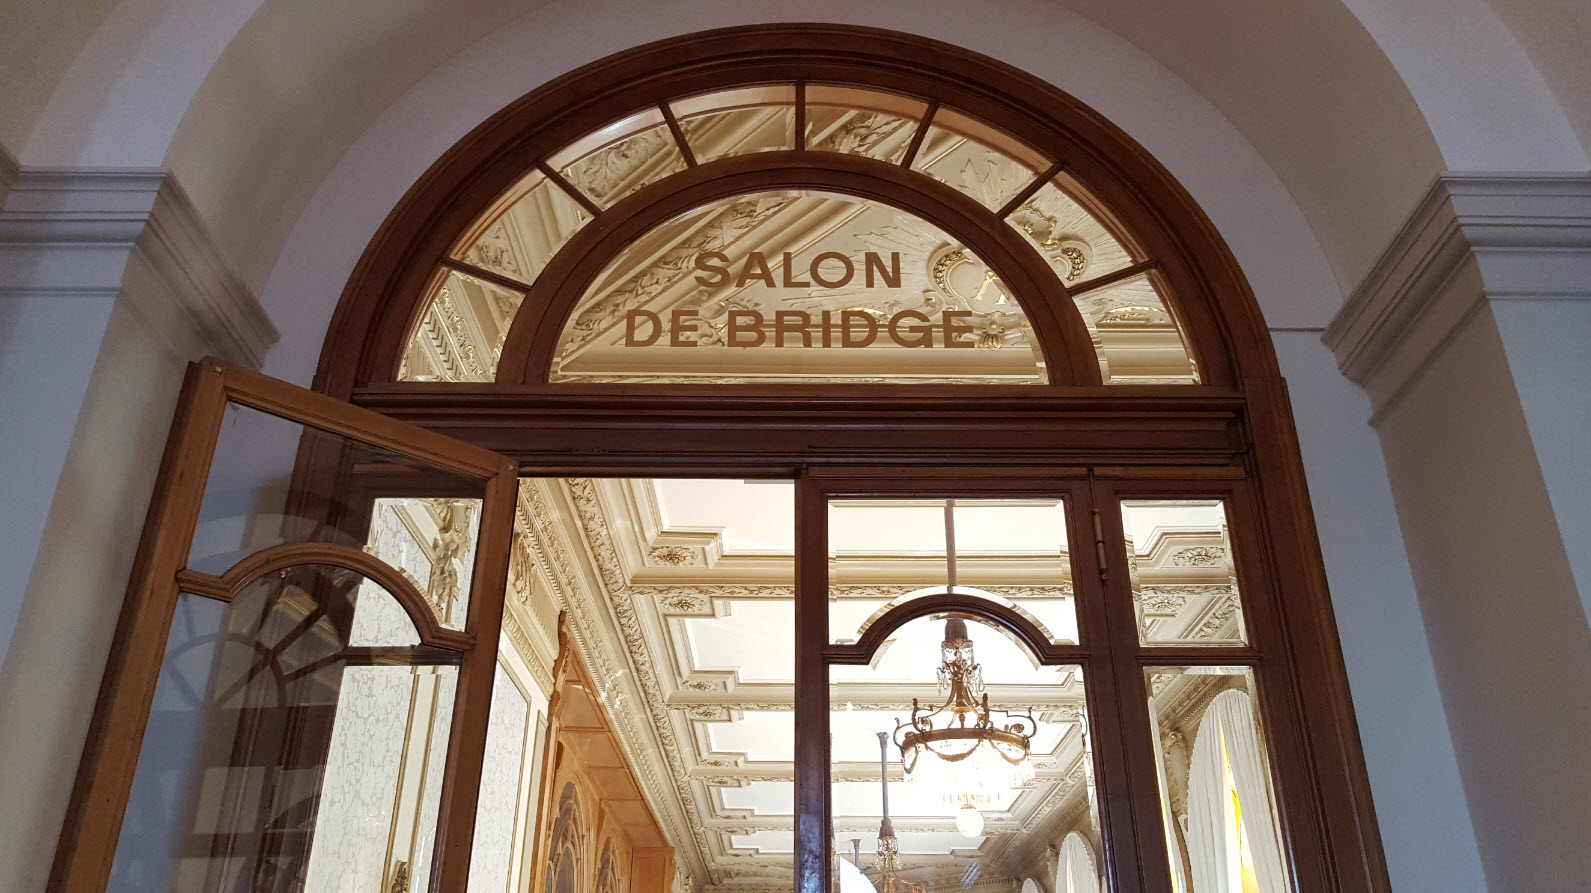 Salon de bridge